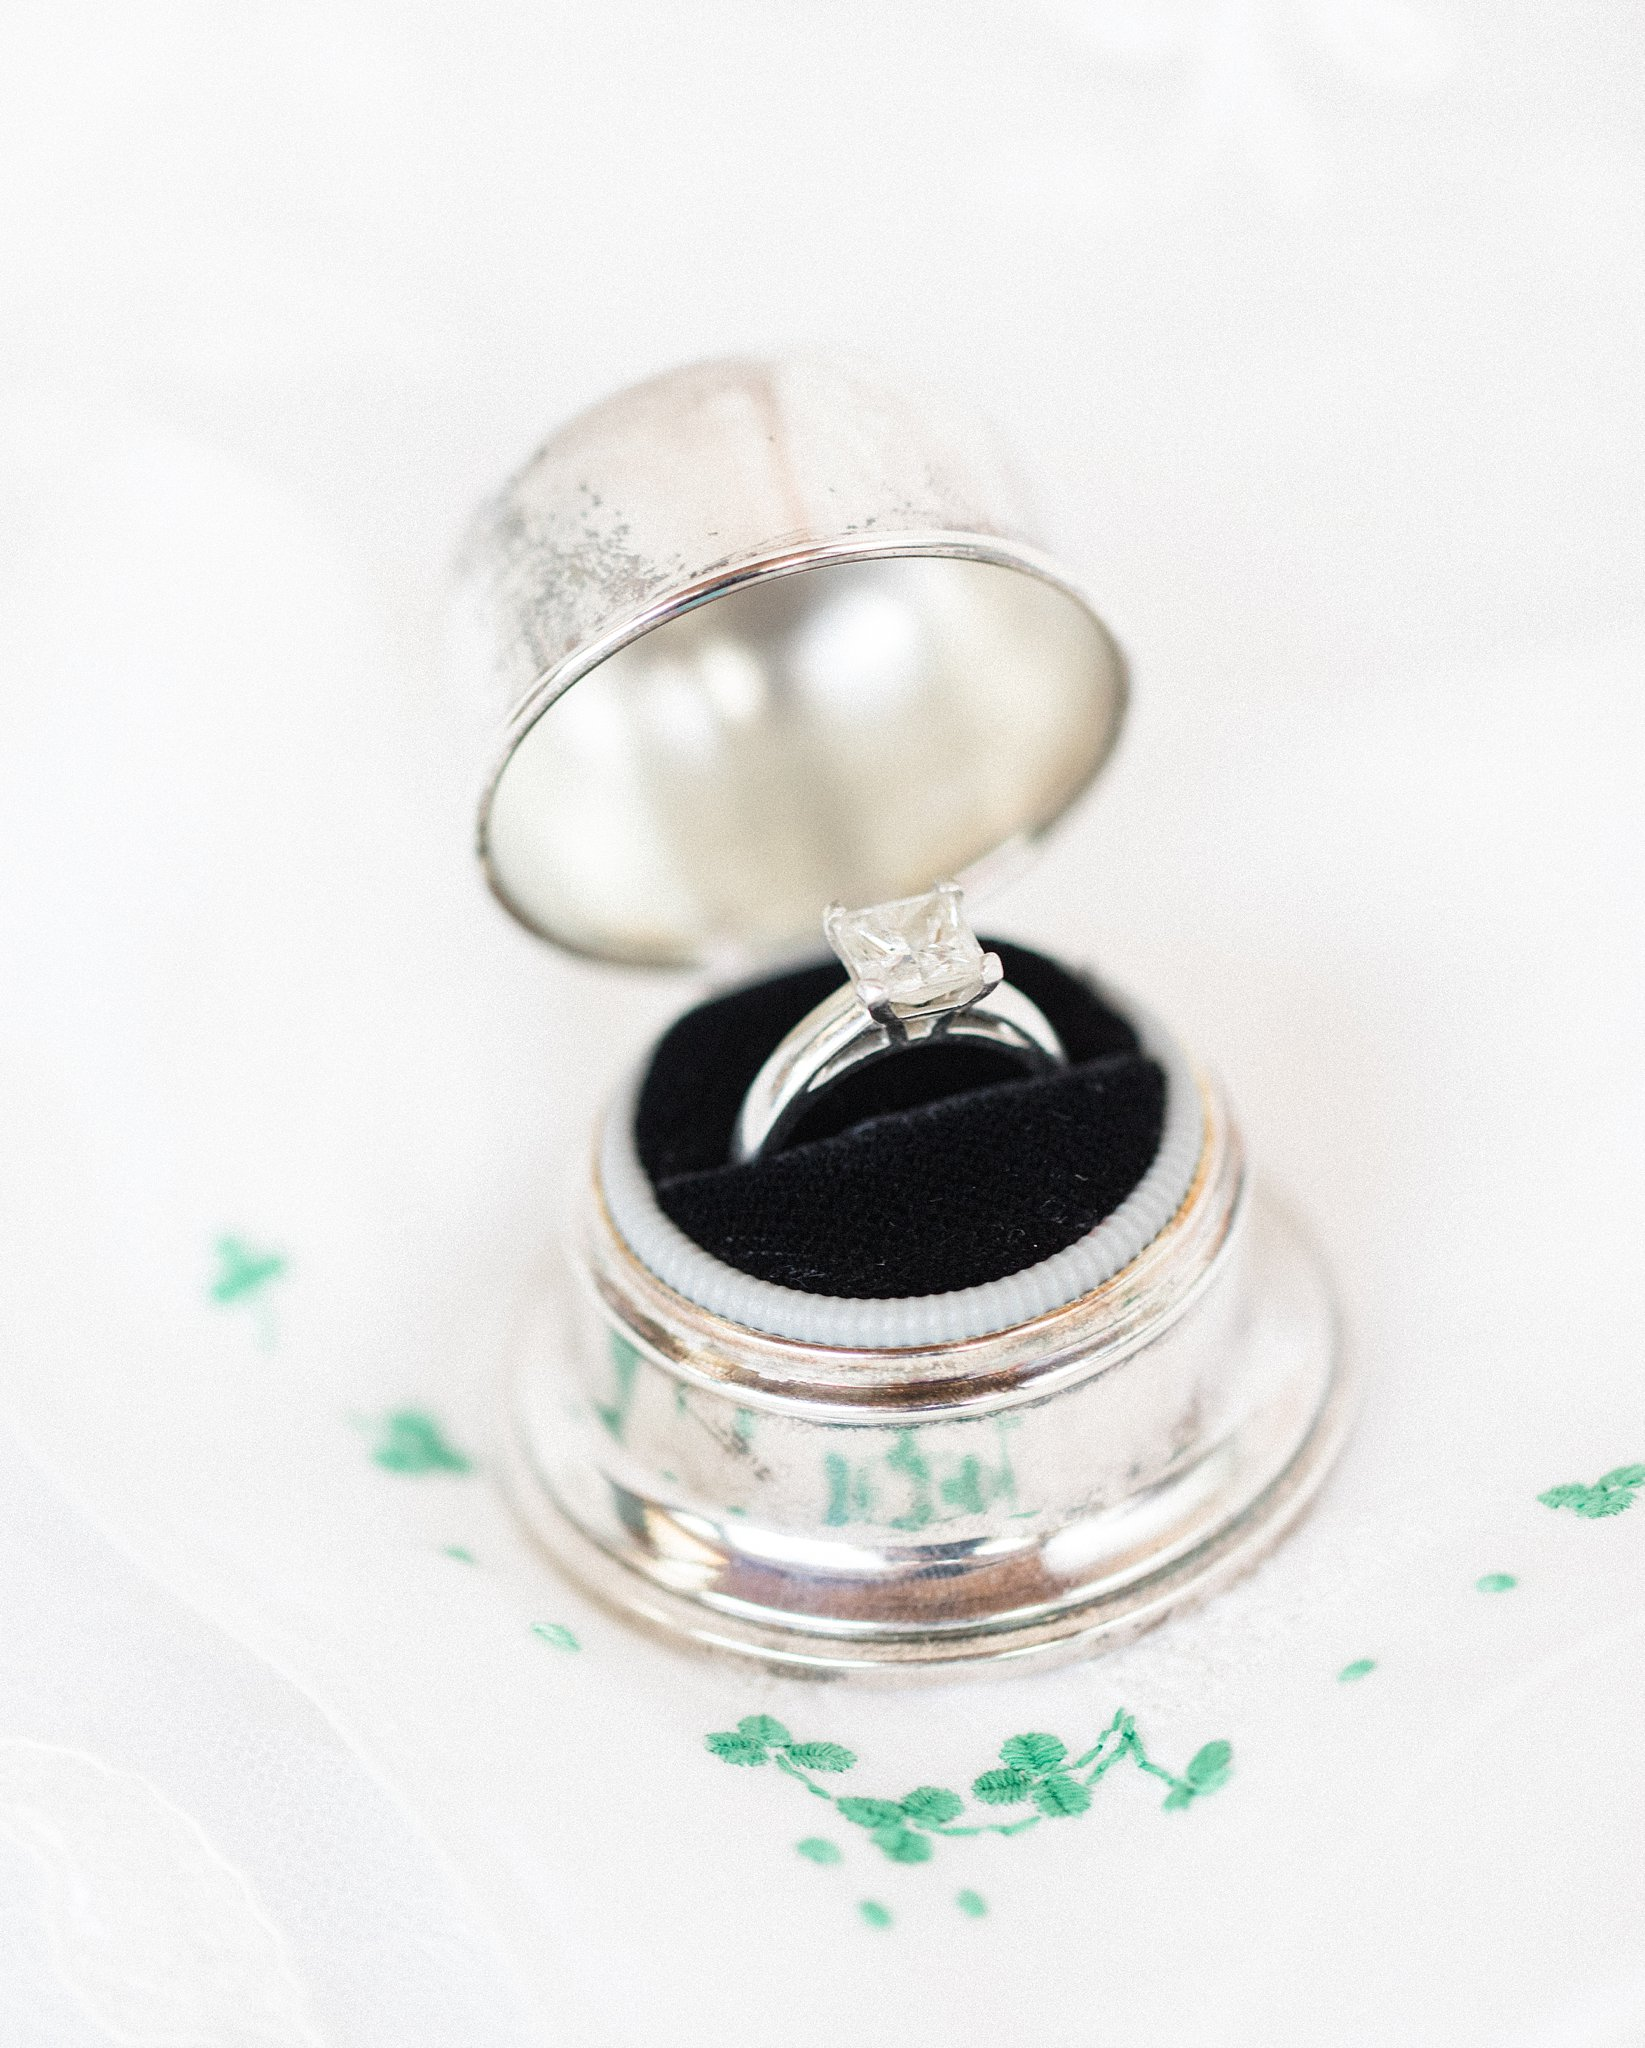 Silver ring box, vintage, Private Estate Wedding Photos, Amy Pinder Photography